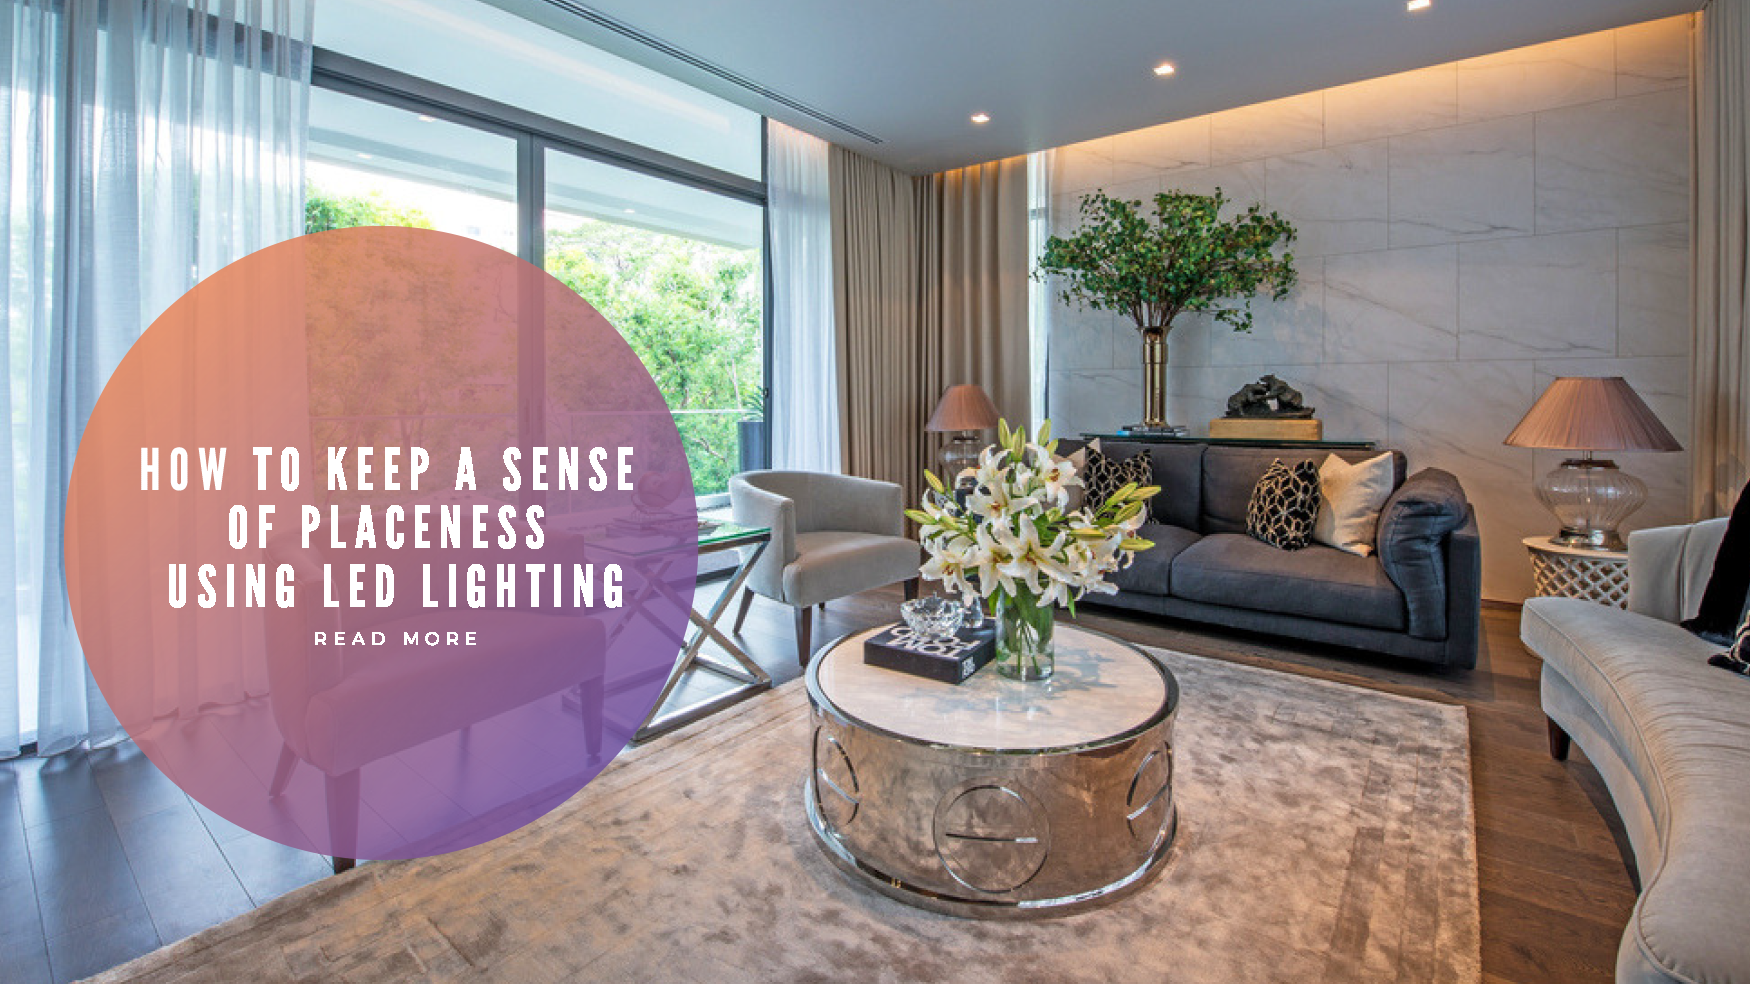 How to Keep a Sense of Placeness Using LED Lighting